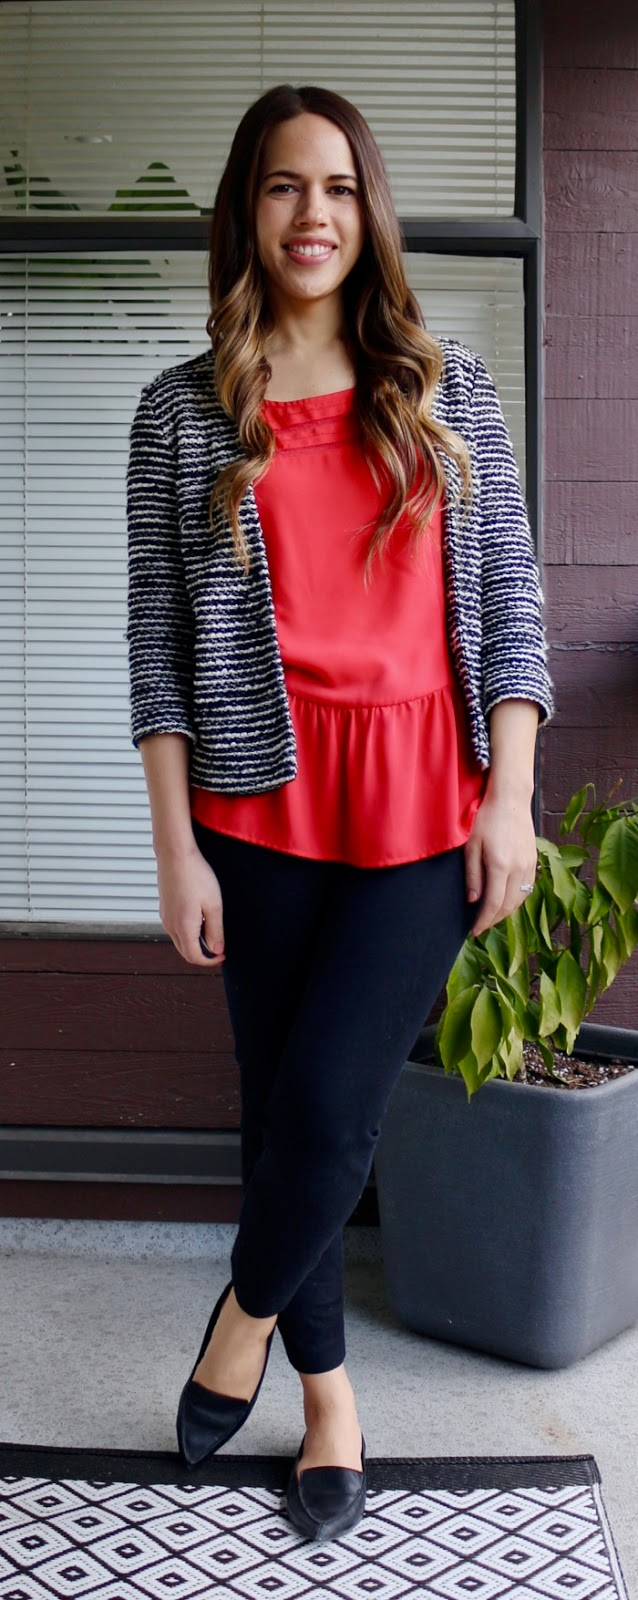 Jules in Flats - Peplum Blouse with Striped Blazer/Jacket